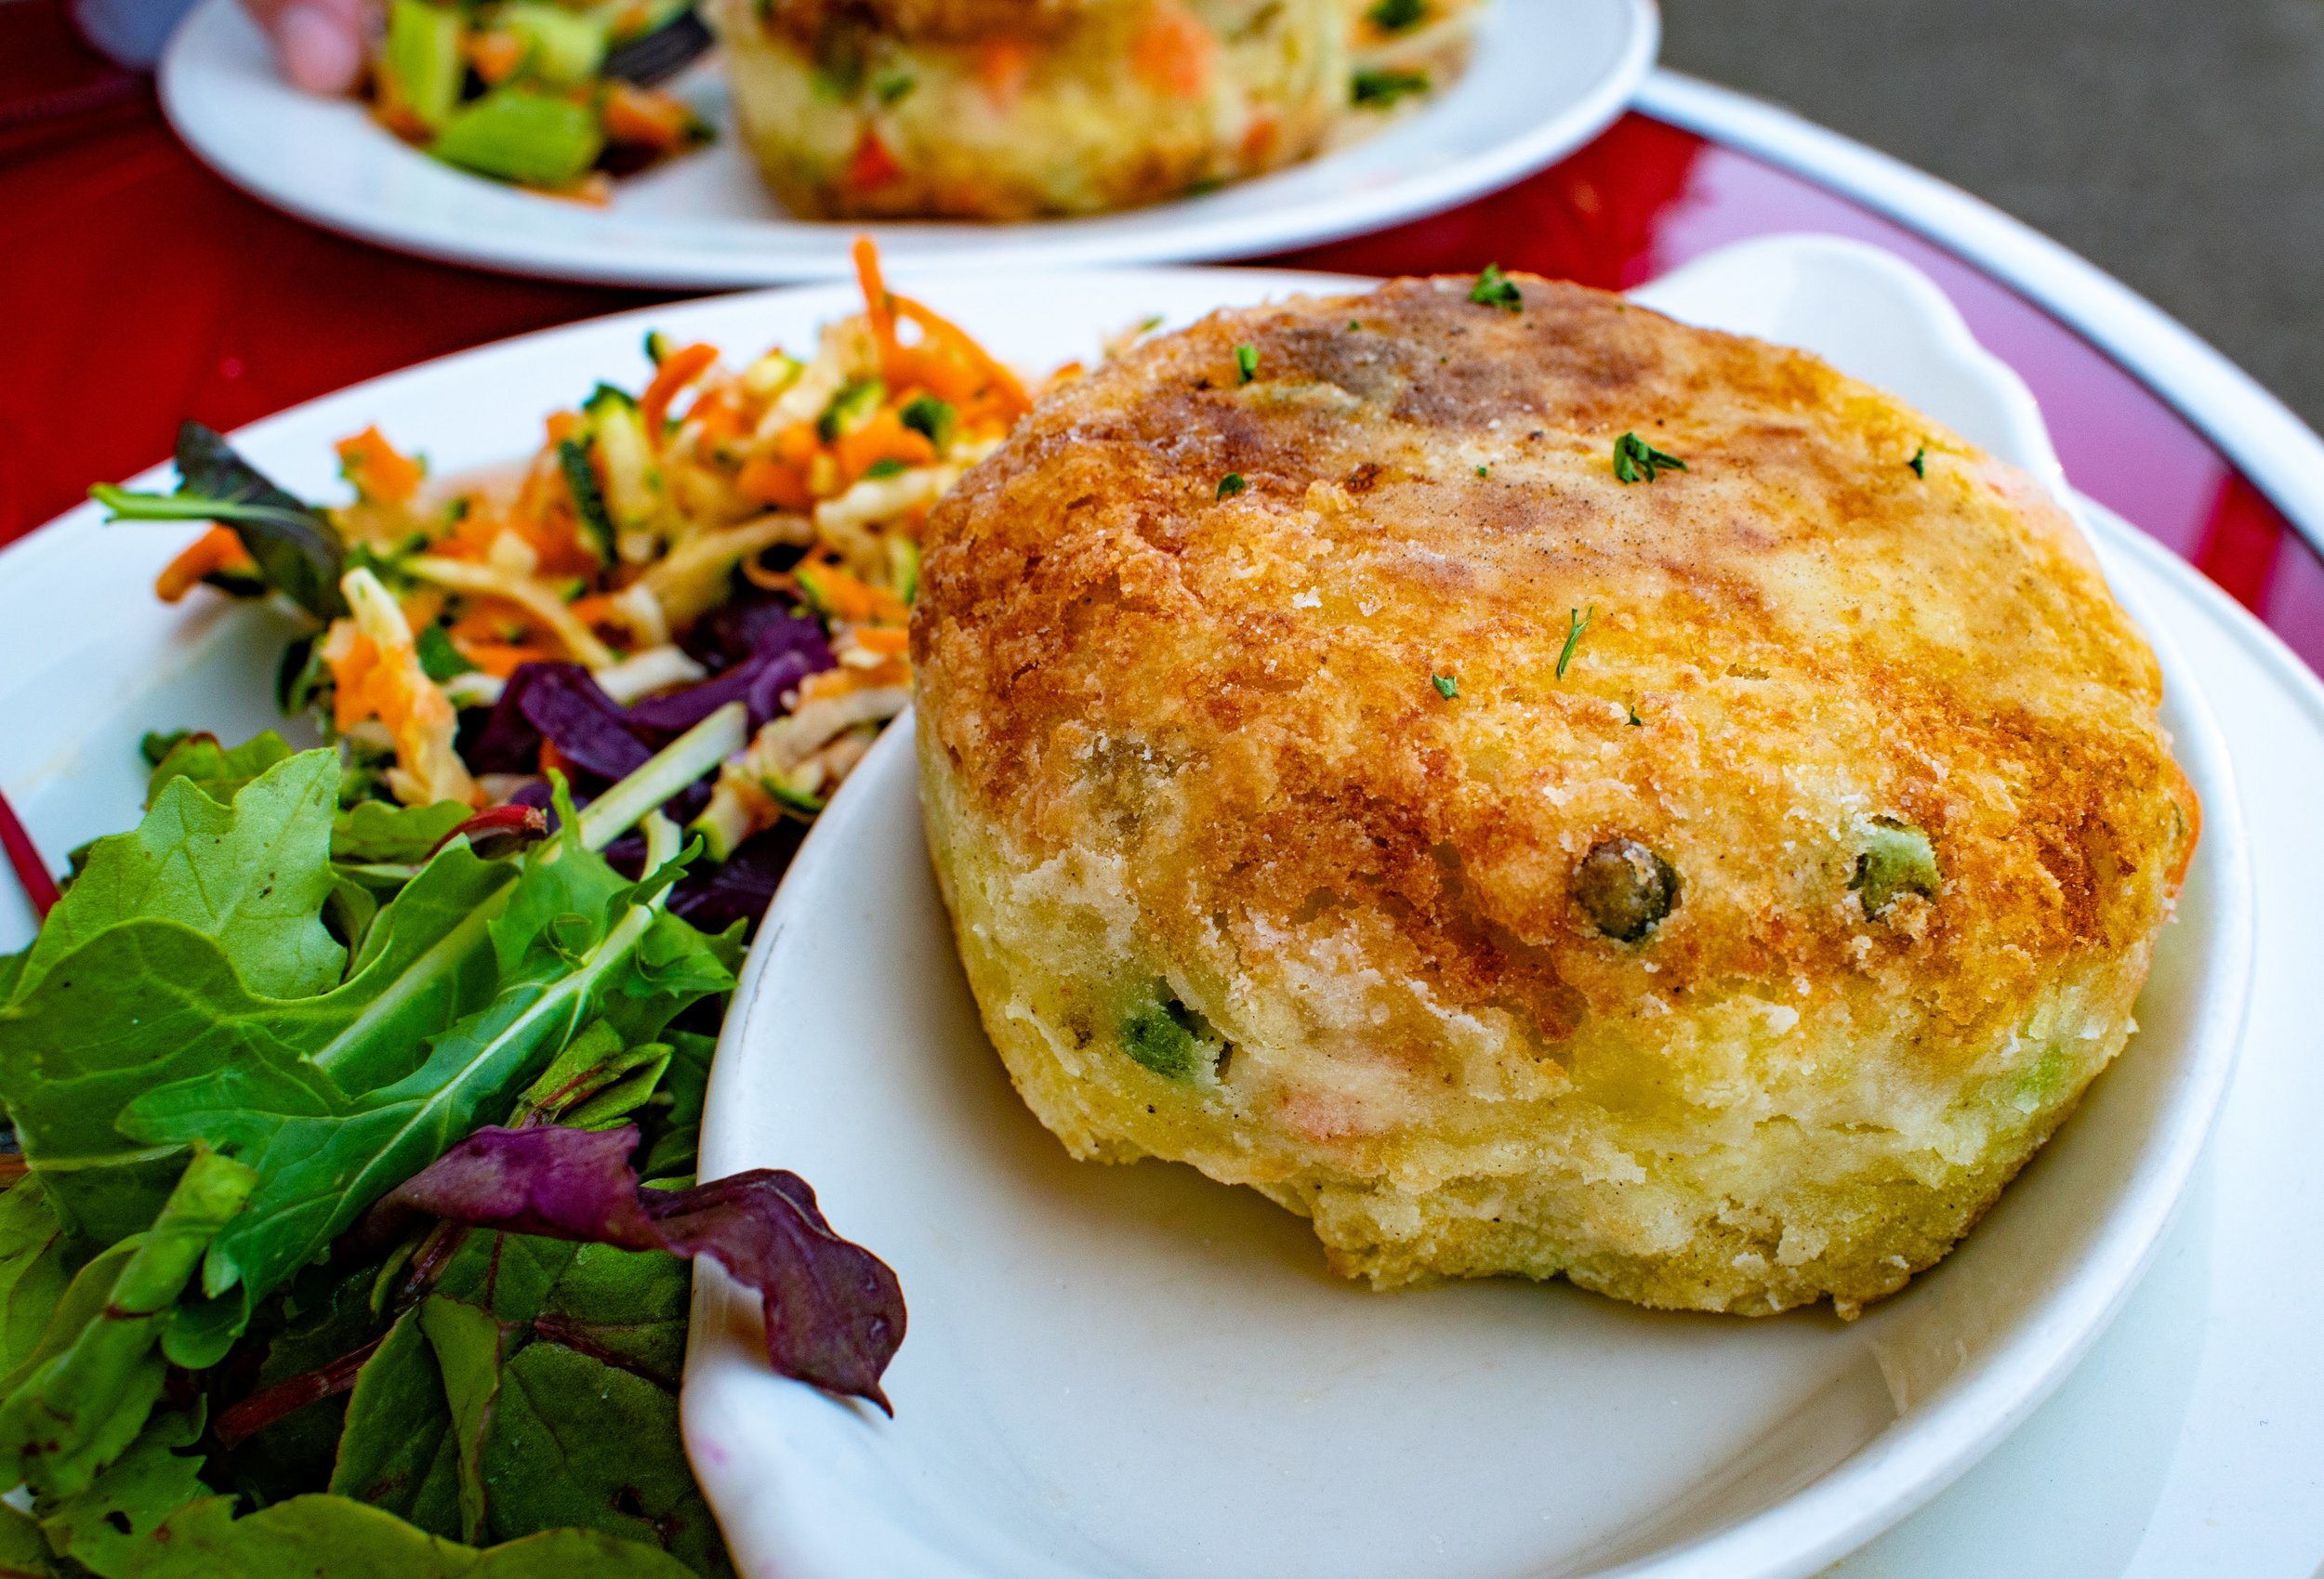 uprooted-traveler-eniskerry-dublin-ireland-potato-cakes-vegan-guide.jpg